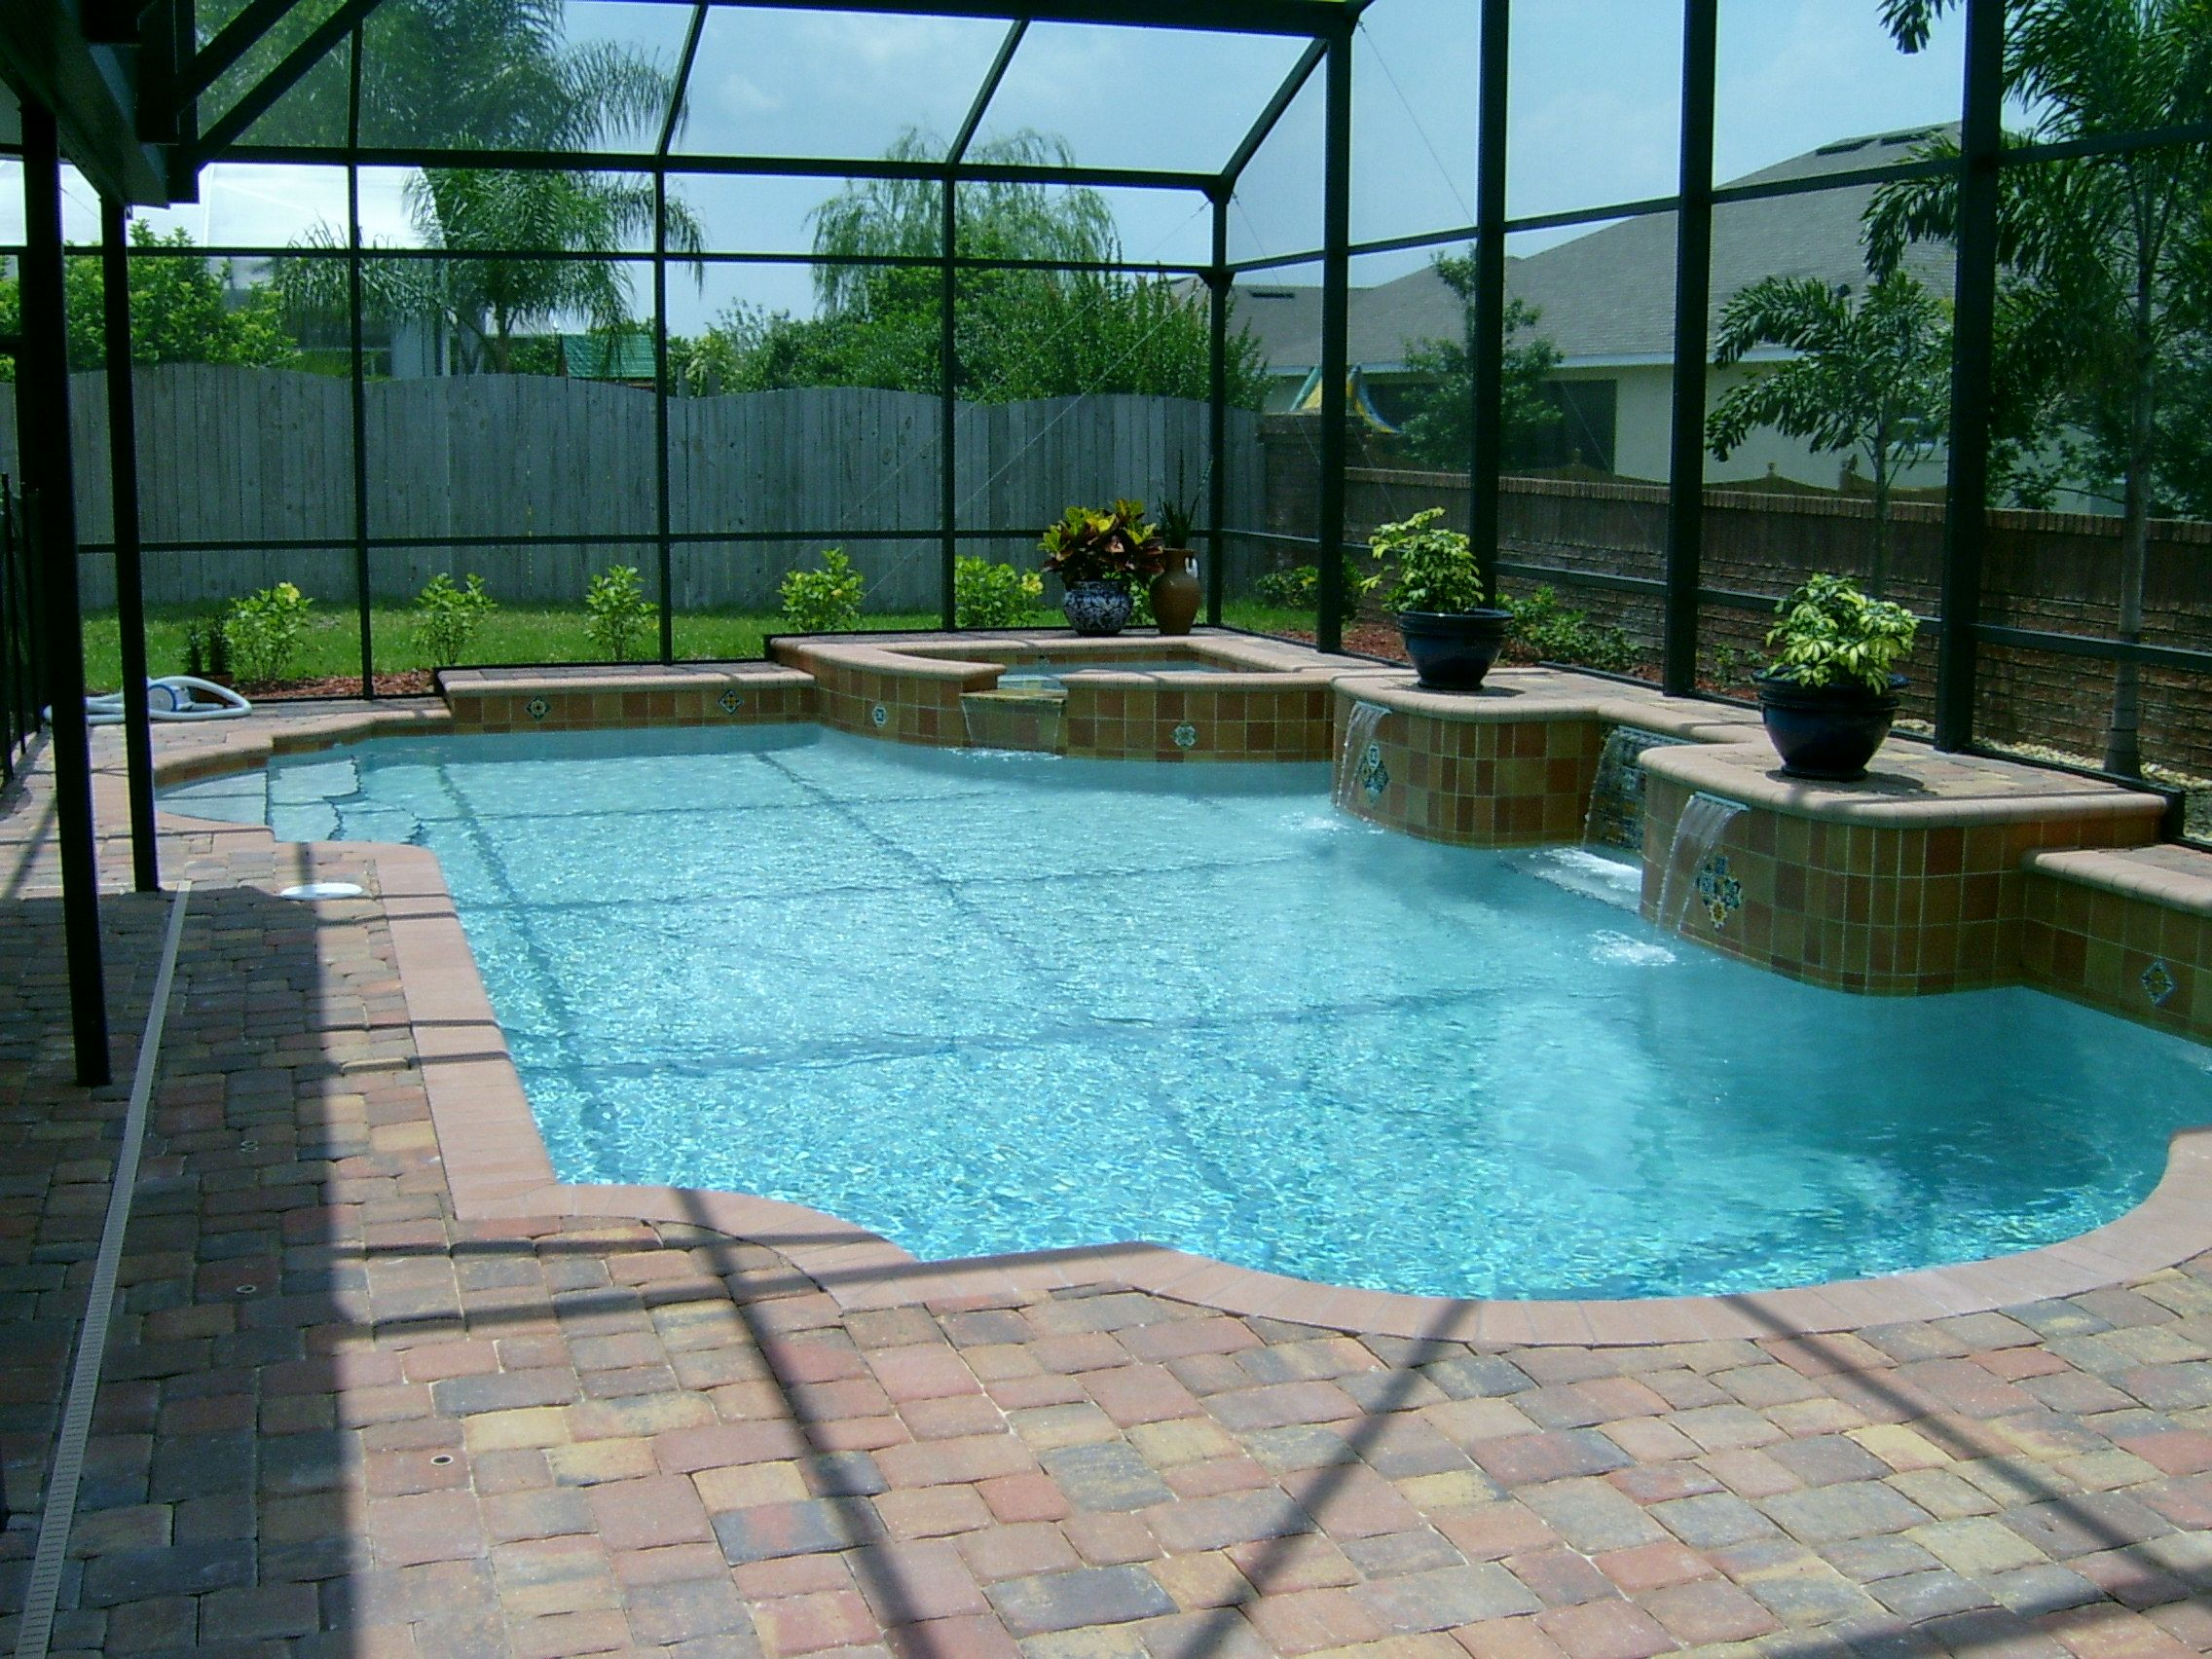 Pool Designs Central Florida Swimming Pool Installation